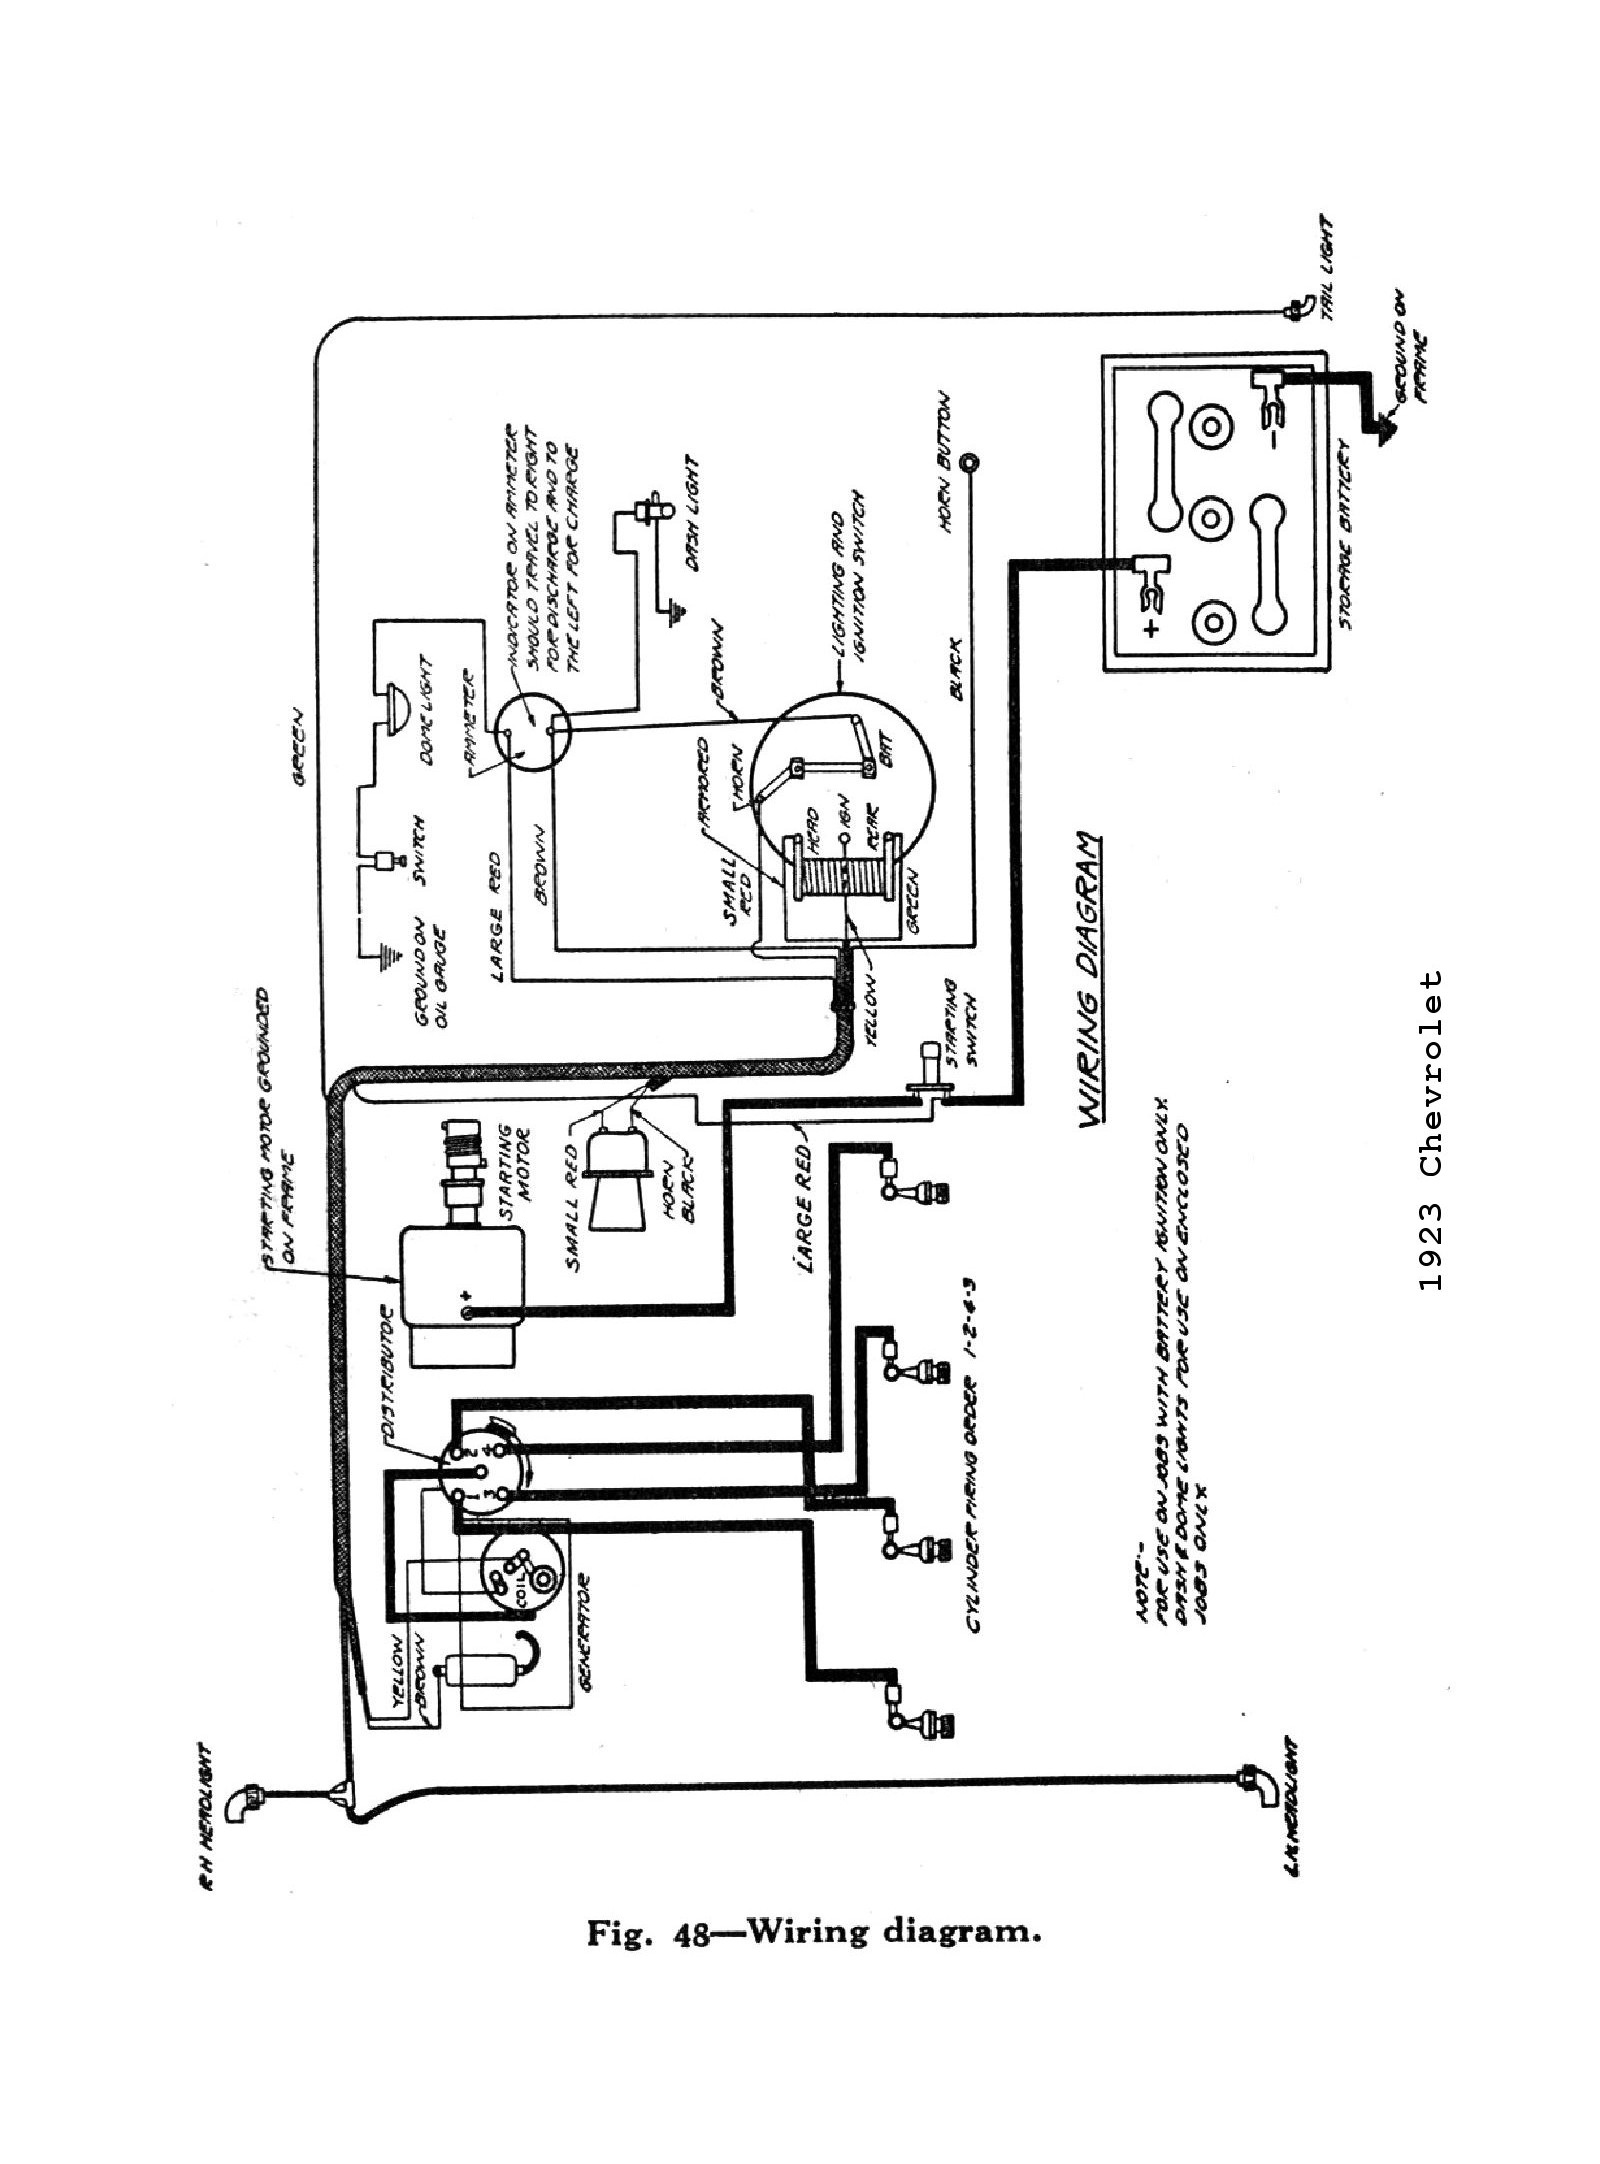 1978 Buick Wiring Diagram Not Lossing 2011 Regal Engine Library Rh 10 Backlink Auktion De 1969 Diagrams Lucerne Door